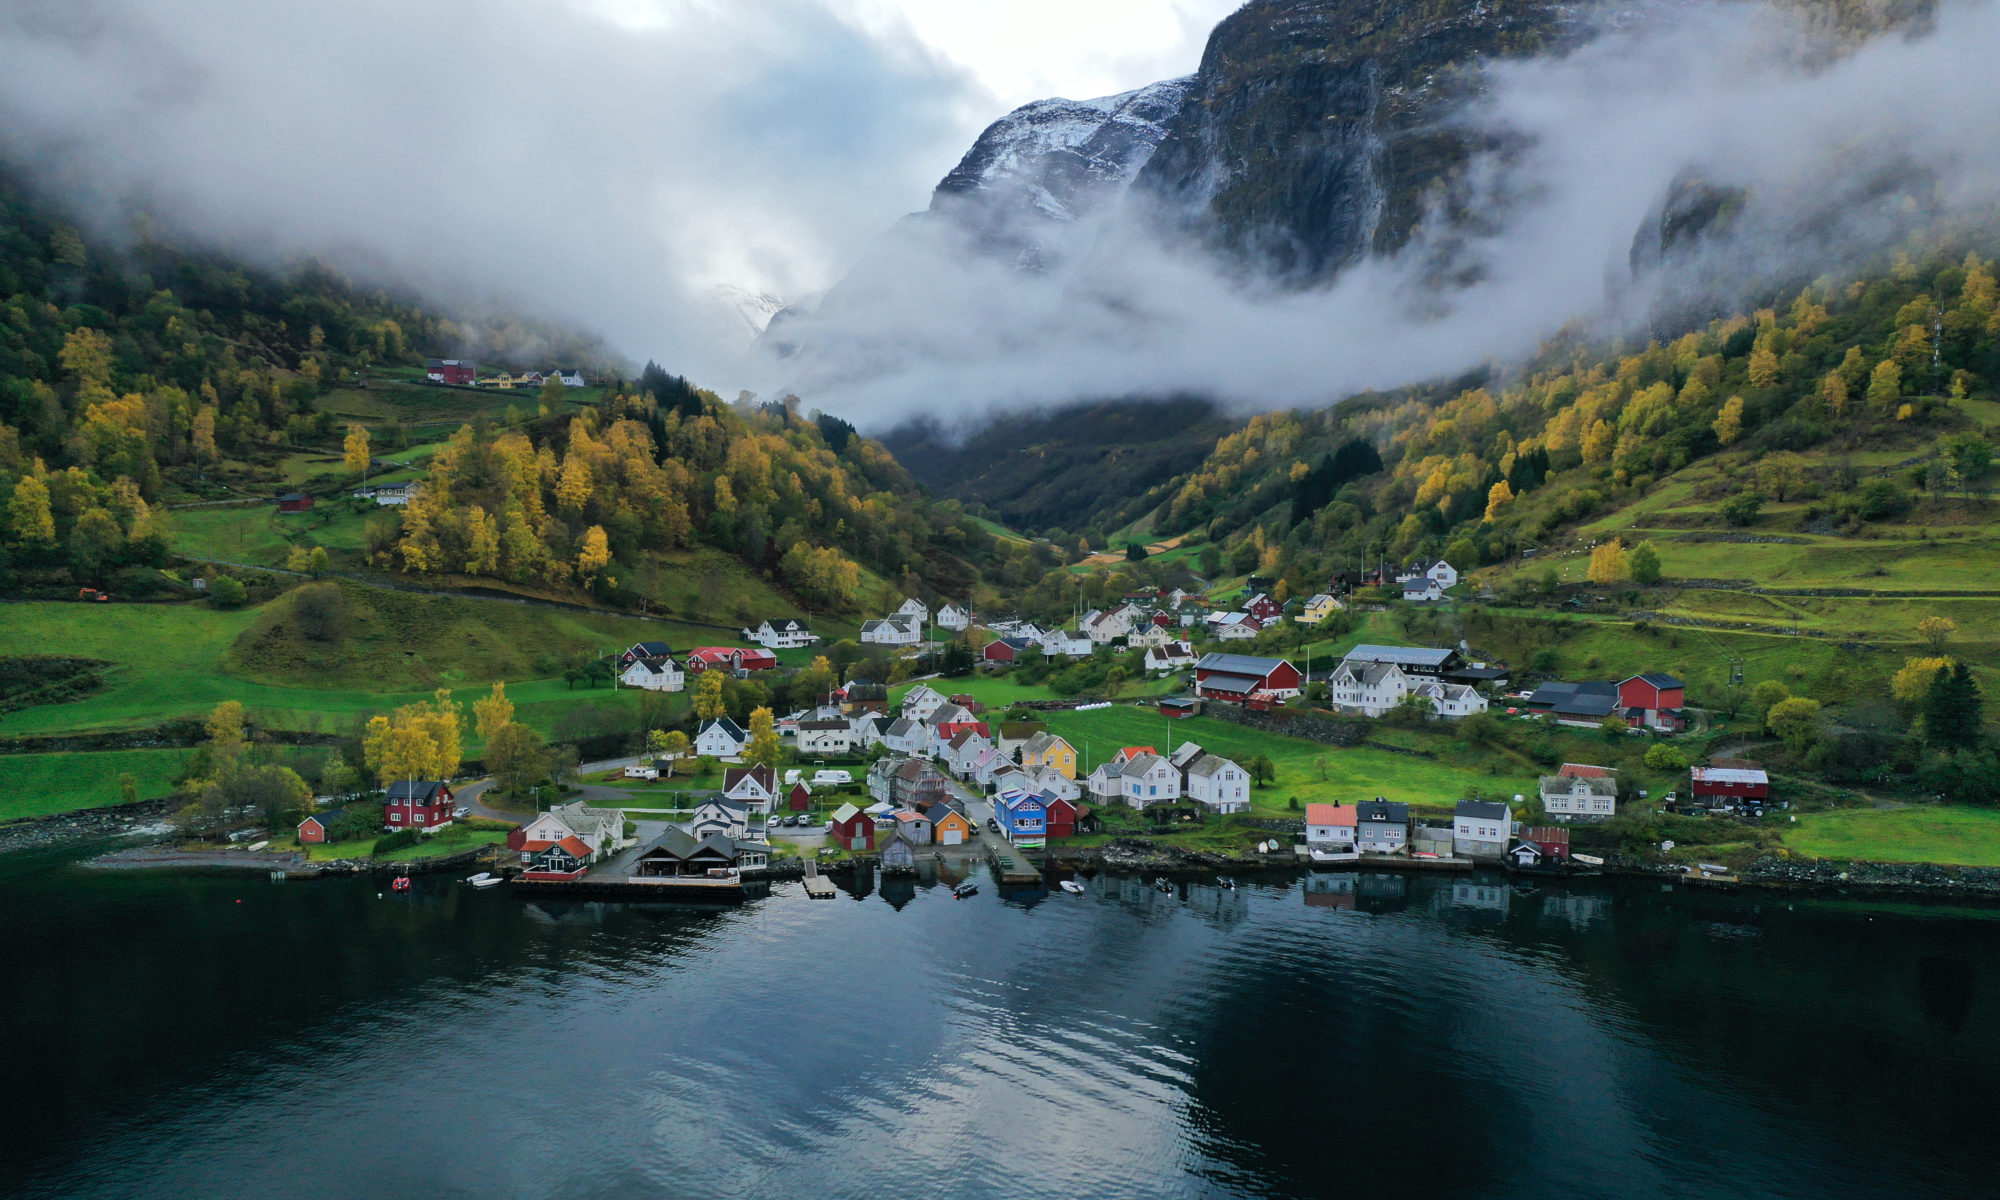 FJORDS NORWAY - Welcome to the Norwegian Fjords - Undredal - Aurlandsfjord - Sognefjord